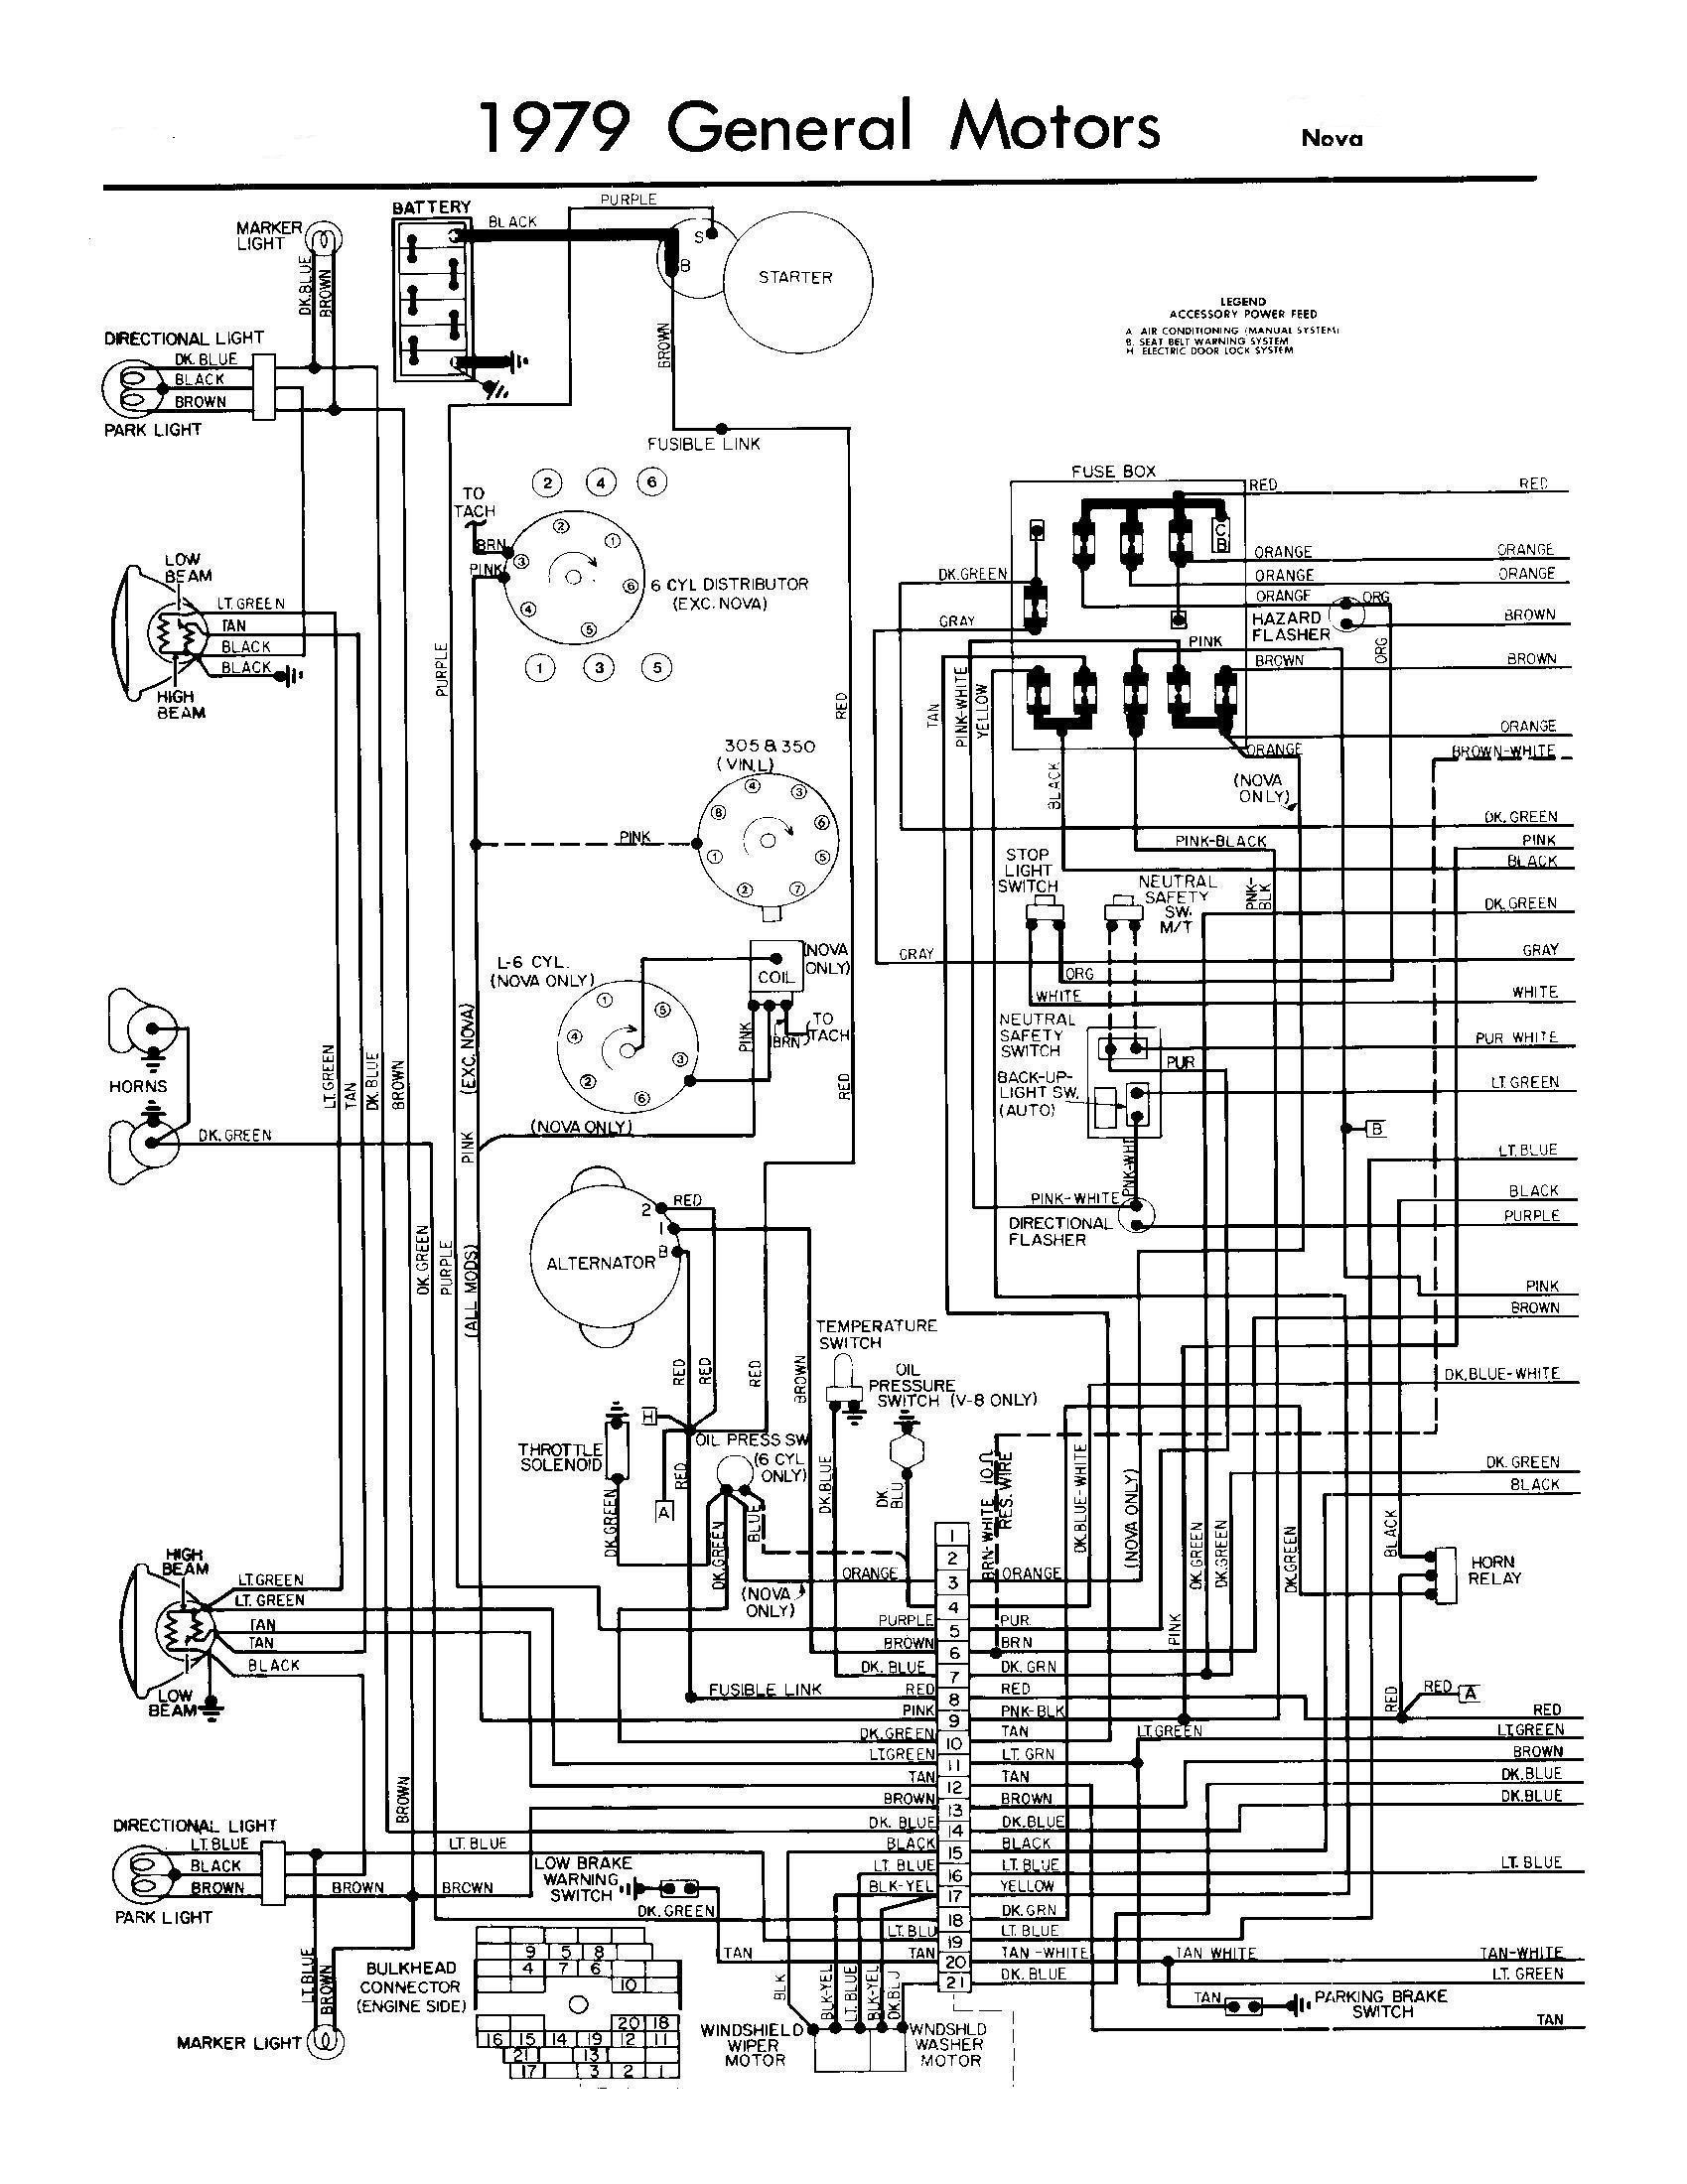 2006 chevy truck wiring diagram best part of wiring diagram2006 chevy 2500 60 wiring diagram wiring diagramchevy truck wiring diagrams get free image about wiring